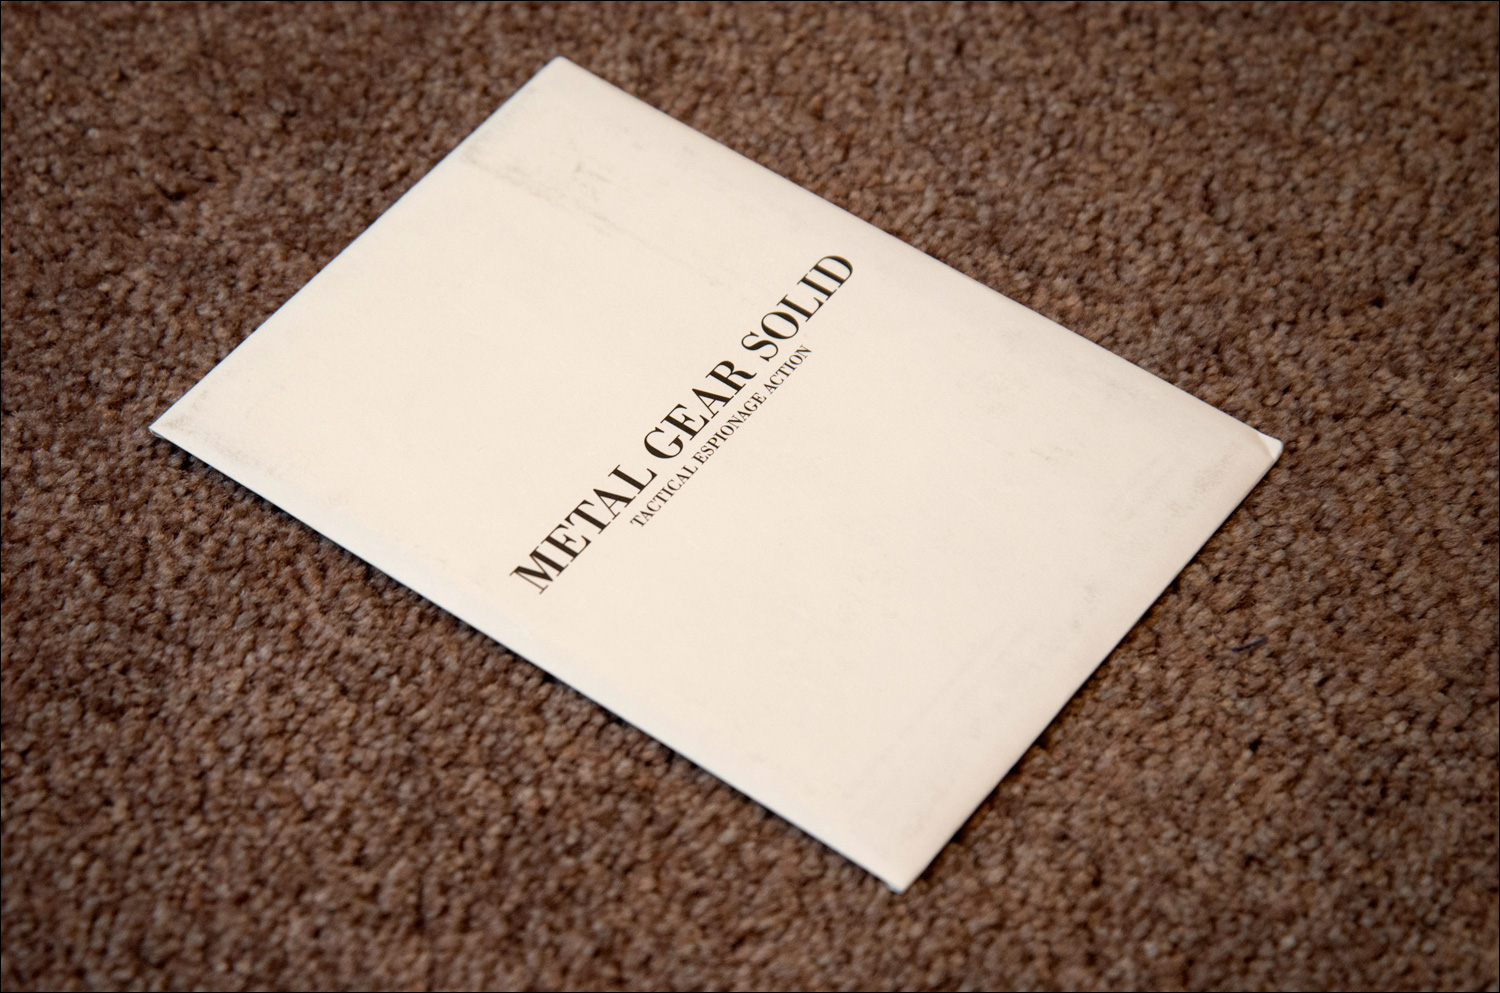 Metal-Gear-Solid-Premium-Package-Postcards-Envelope